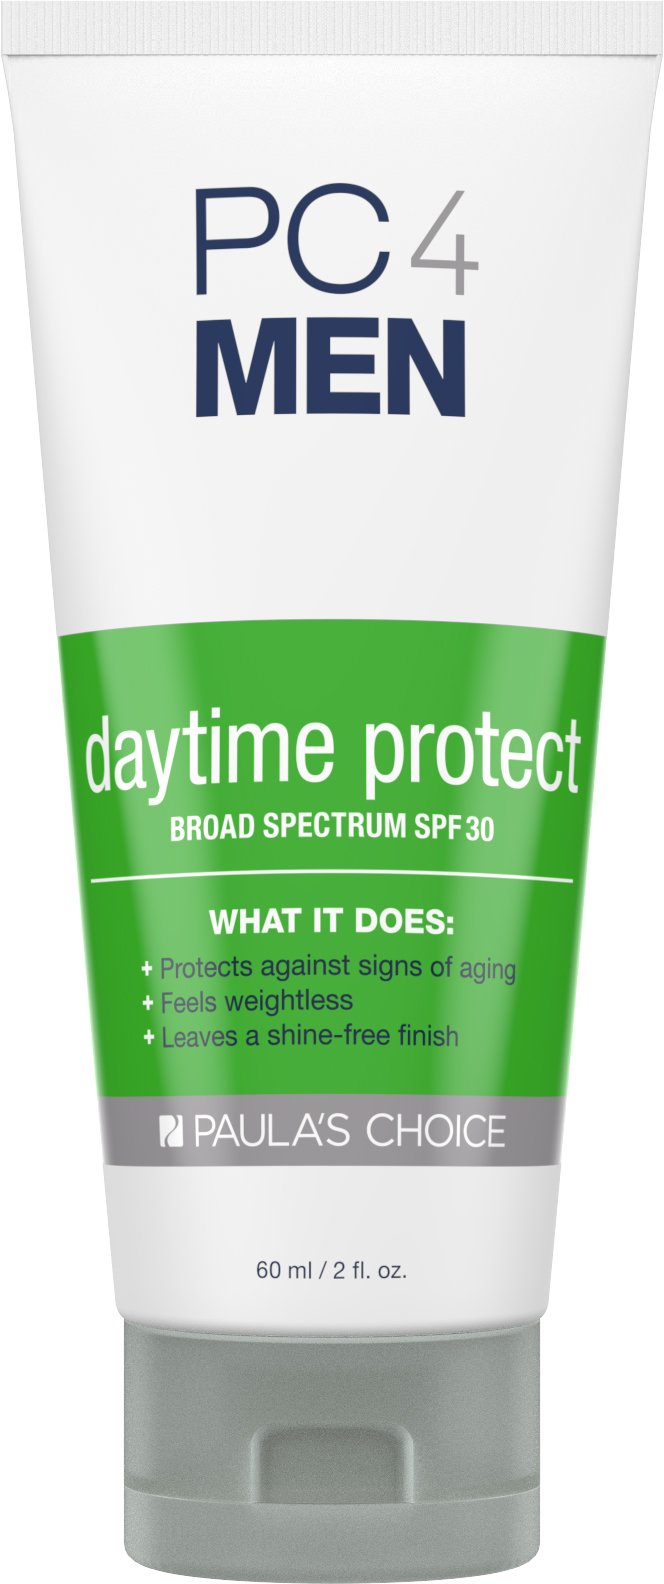 Paula's Choice PC4MEN Daytime Protect SPF 30 Moisturizer with Antioxidants, 2 oz (1 Bottle) Fragrance Free